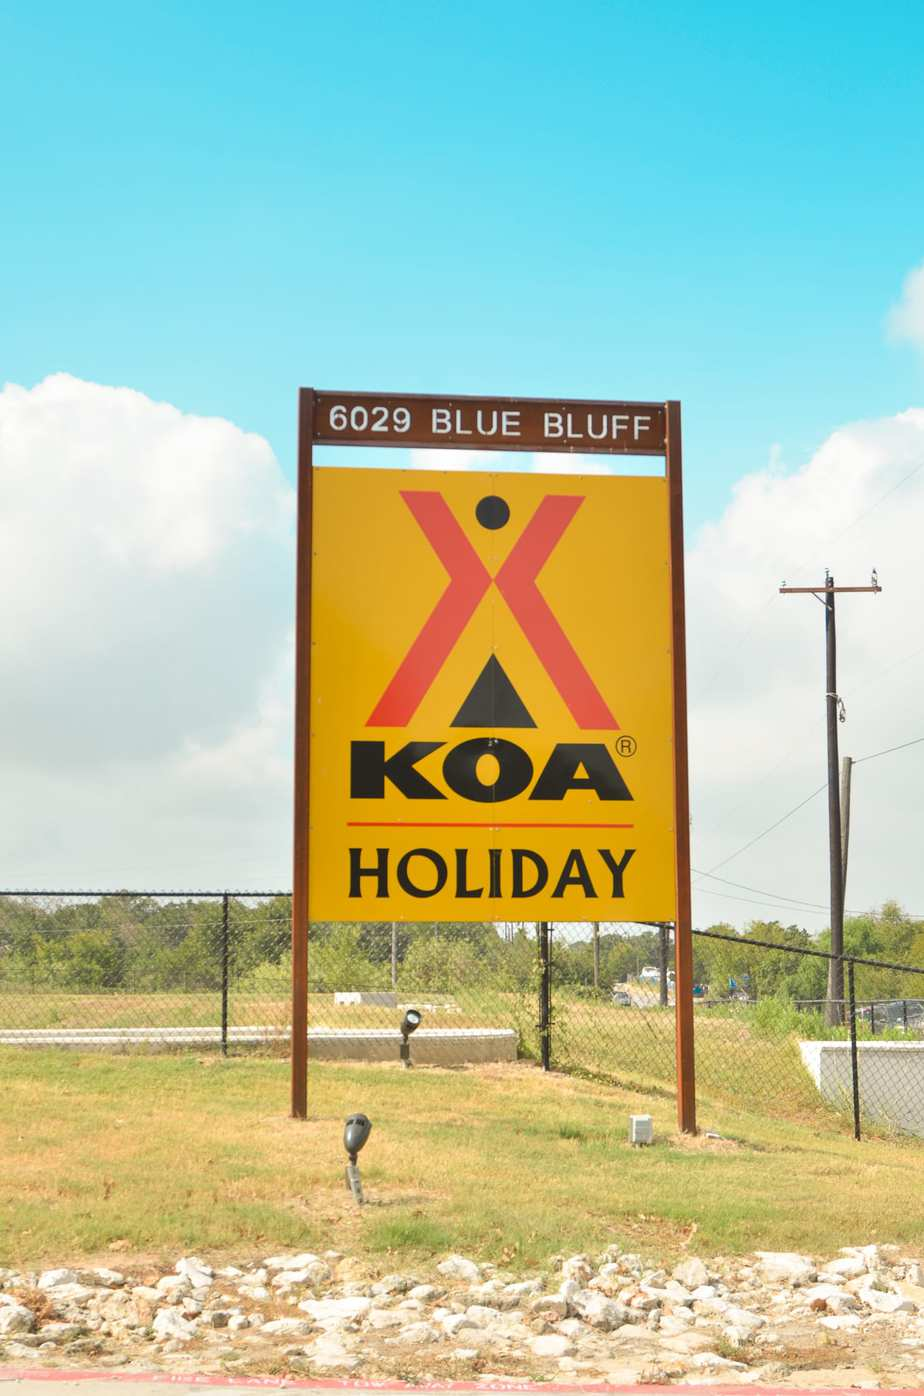 East Austin KOA Holiday at Blue Bluff Rd